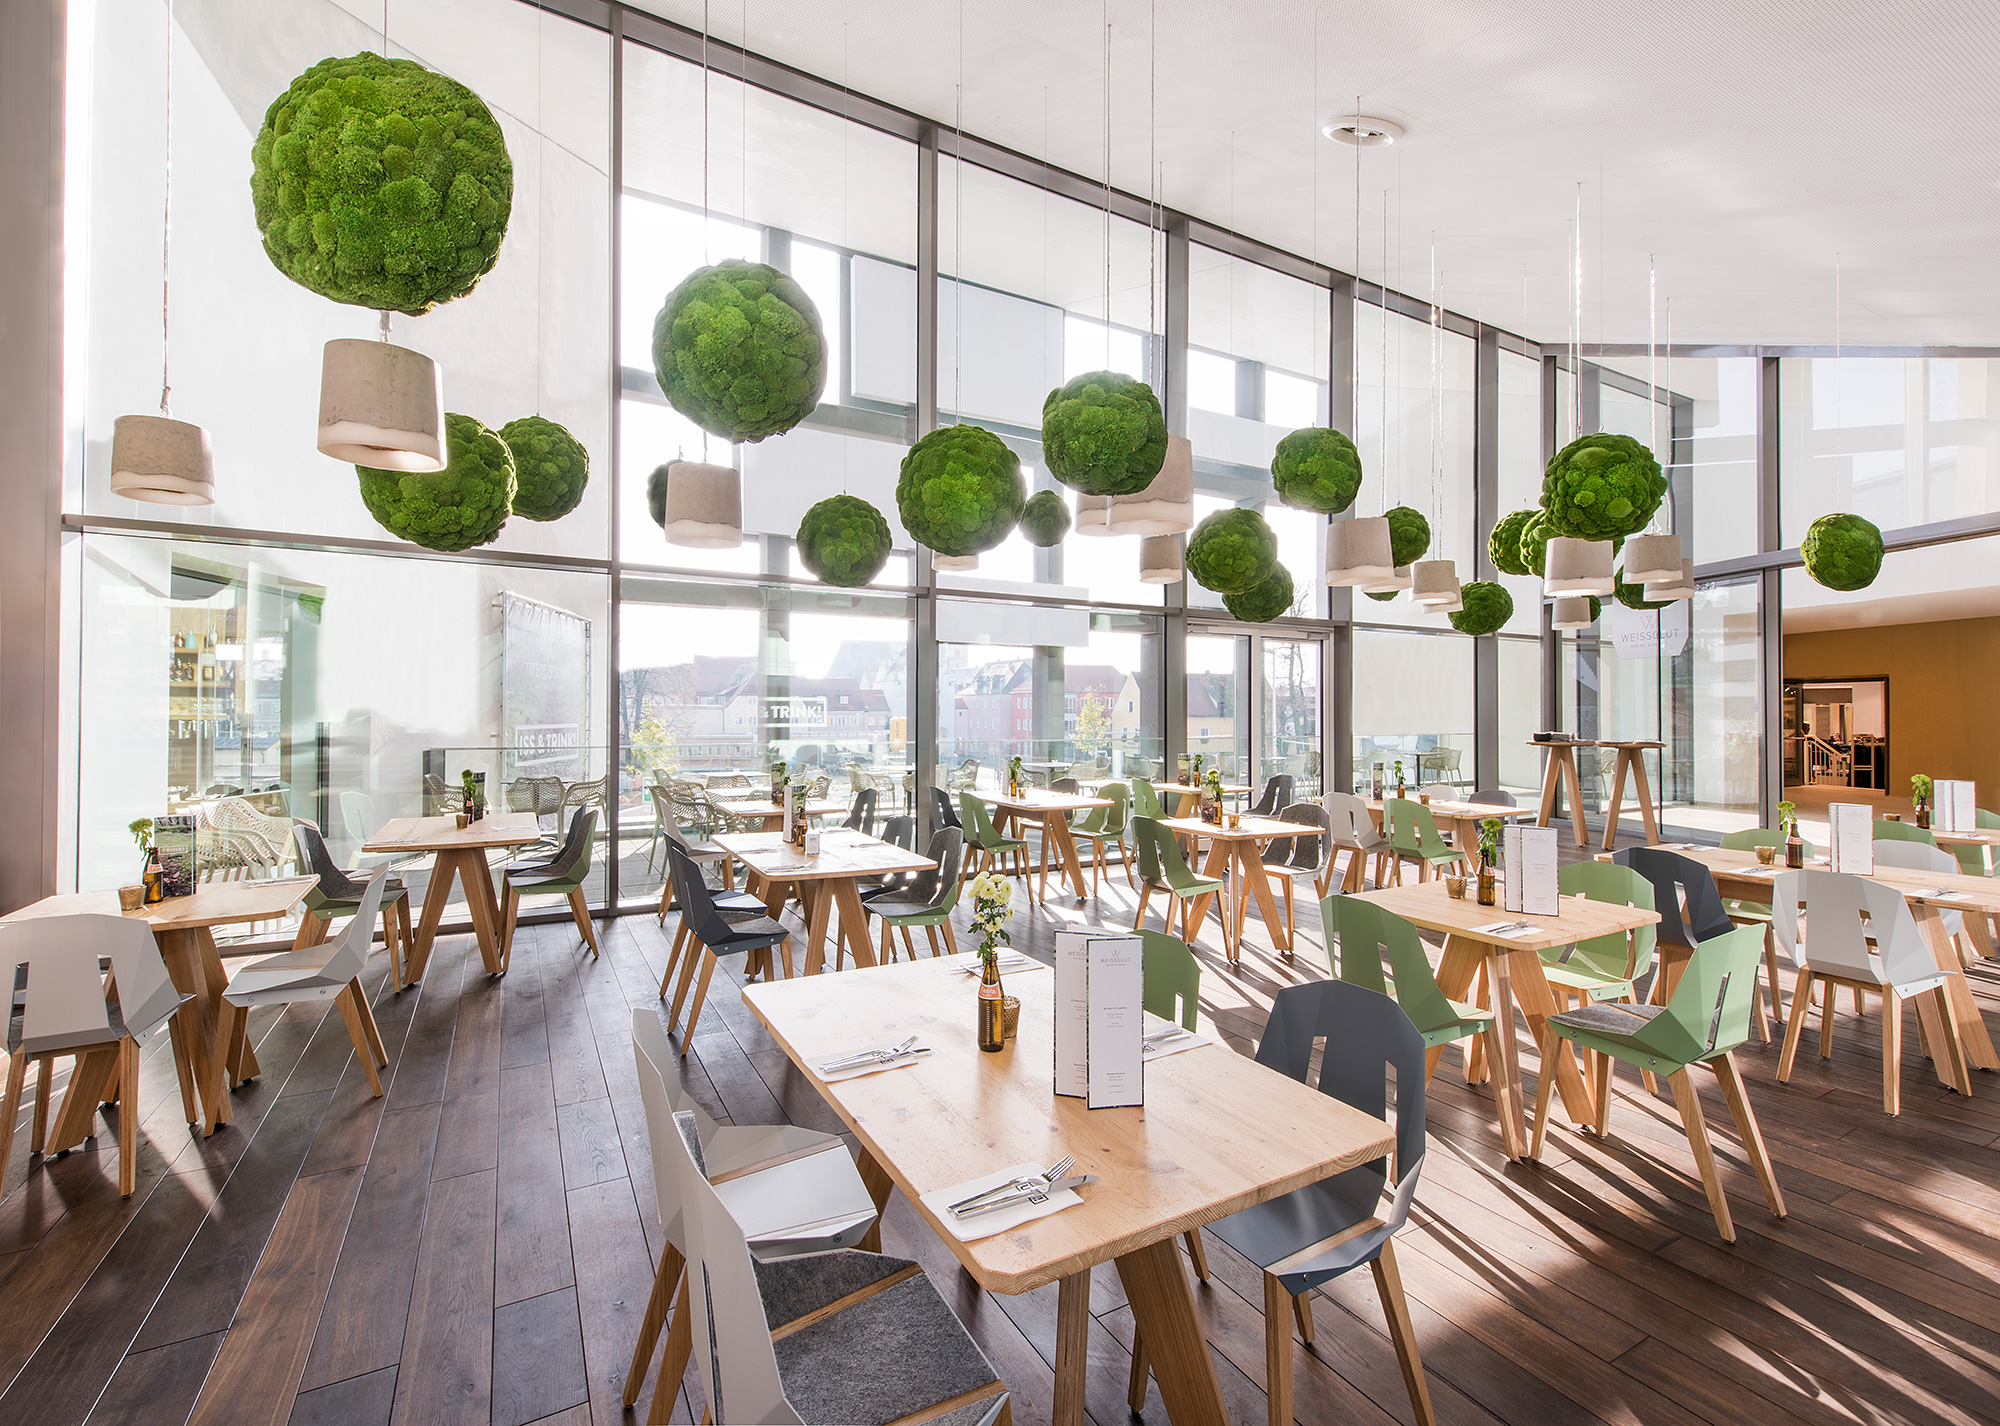 Functionally acoustic moss spheres with Greenhill Premium moss by Freund, Weissglut restaurant